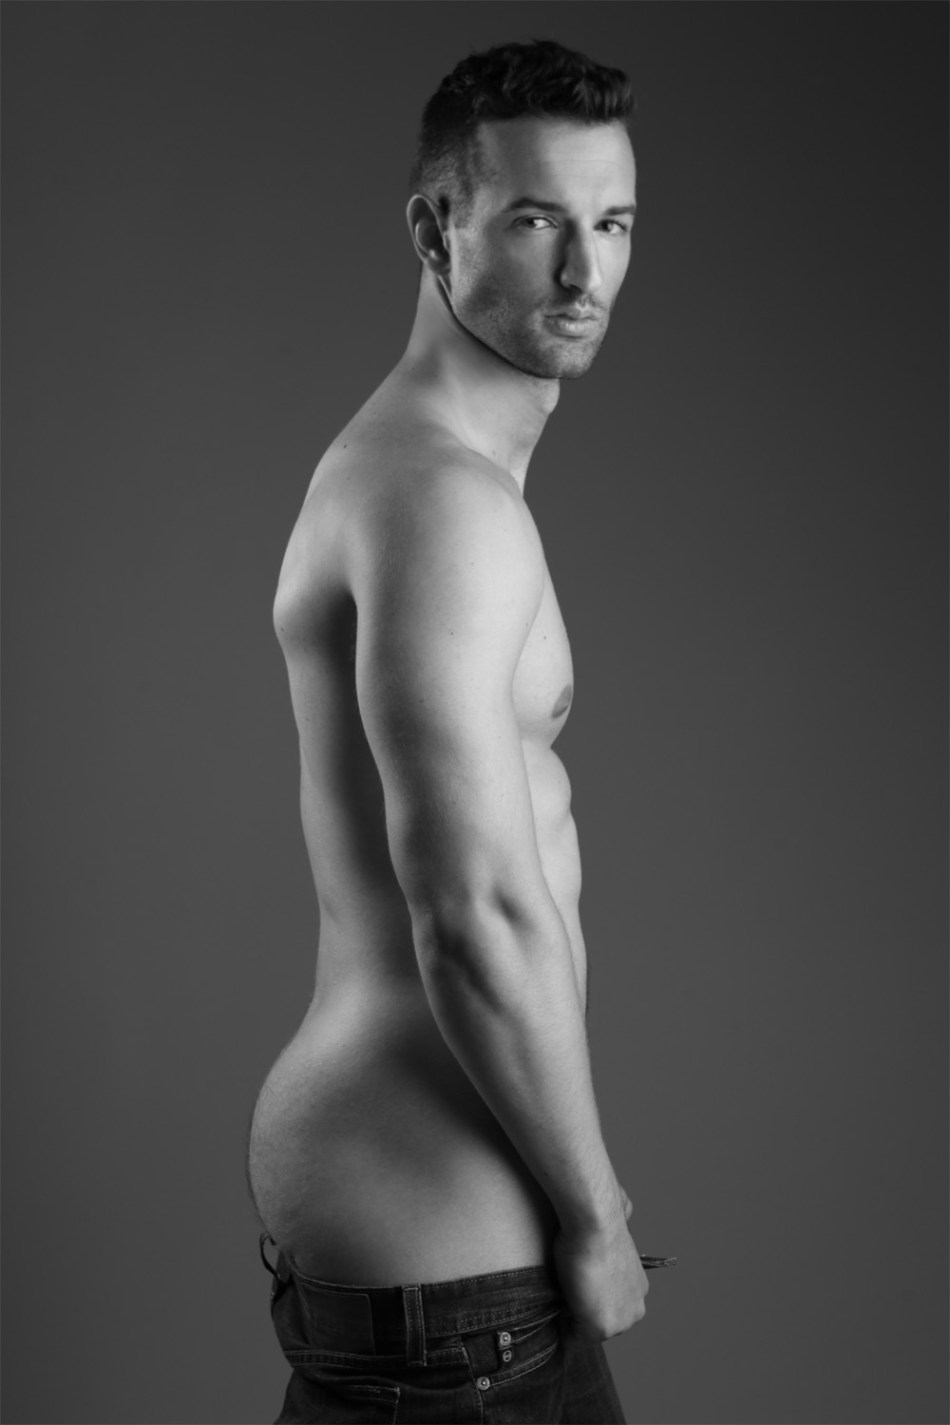 Striking newcomer Jay Wagner teams up with photographer Michael Dar for an eye-catching portrait series.